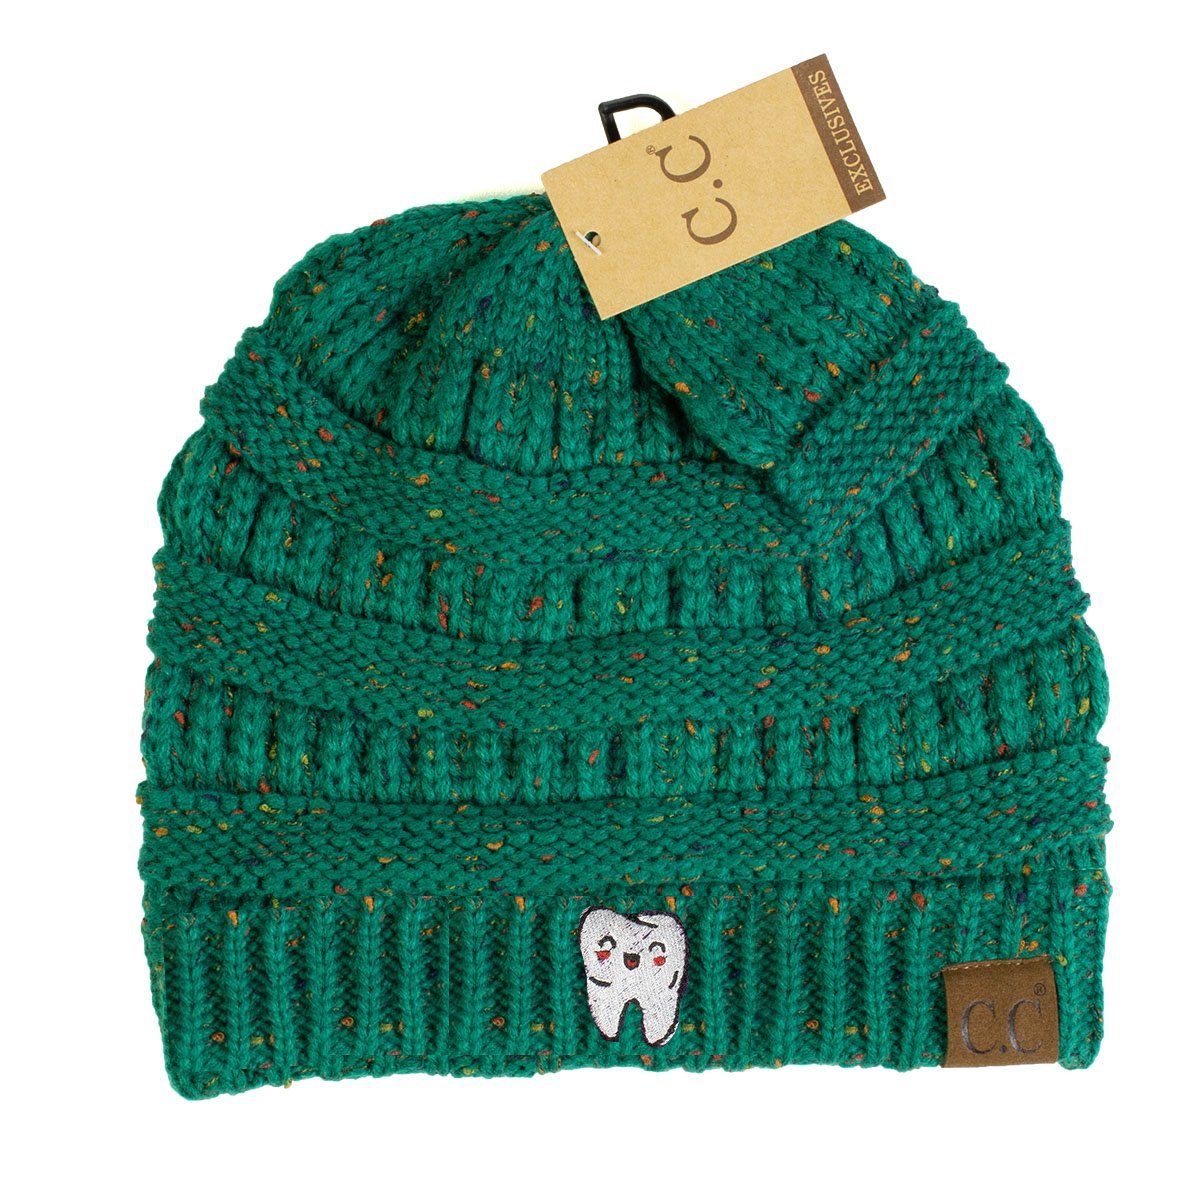 Happy Tooth Flecked CC Beanie – Shop With Cre d56f85411417